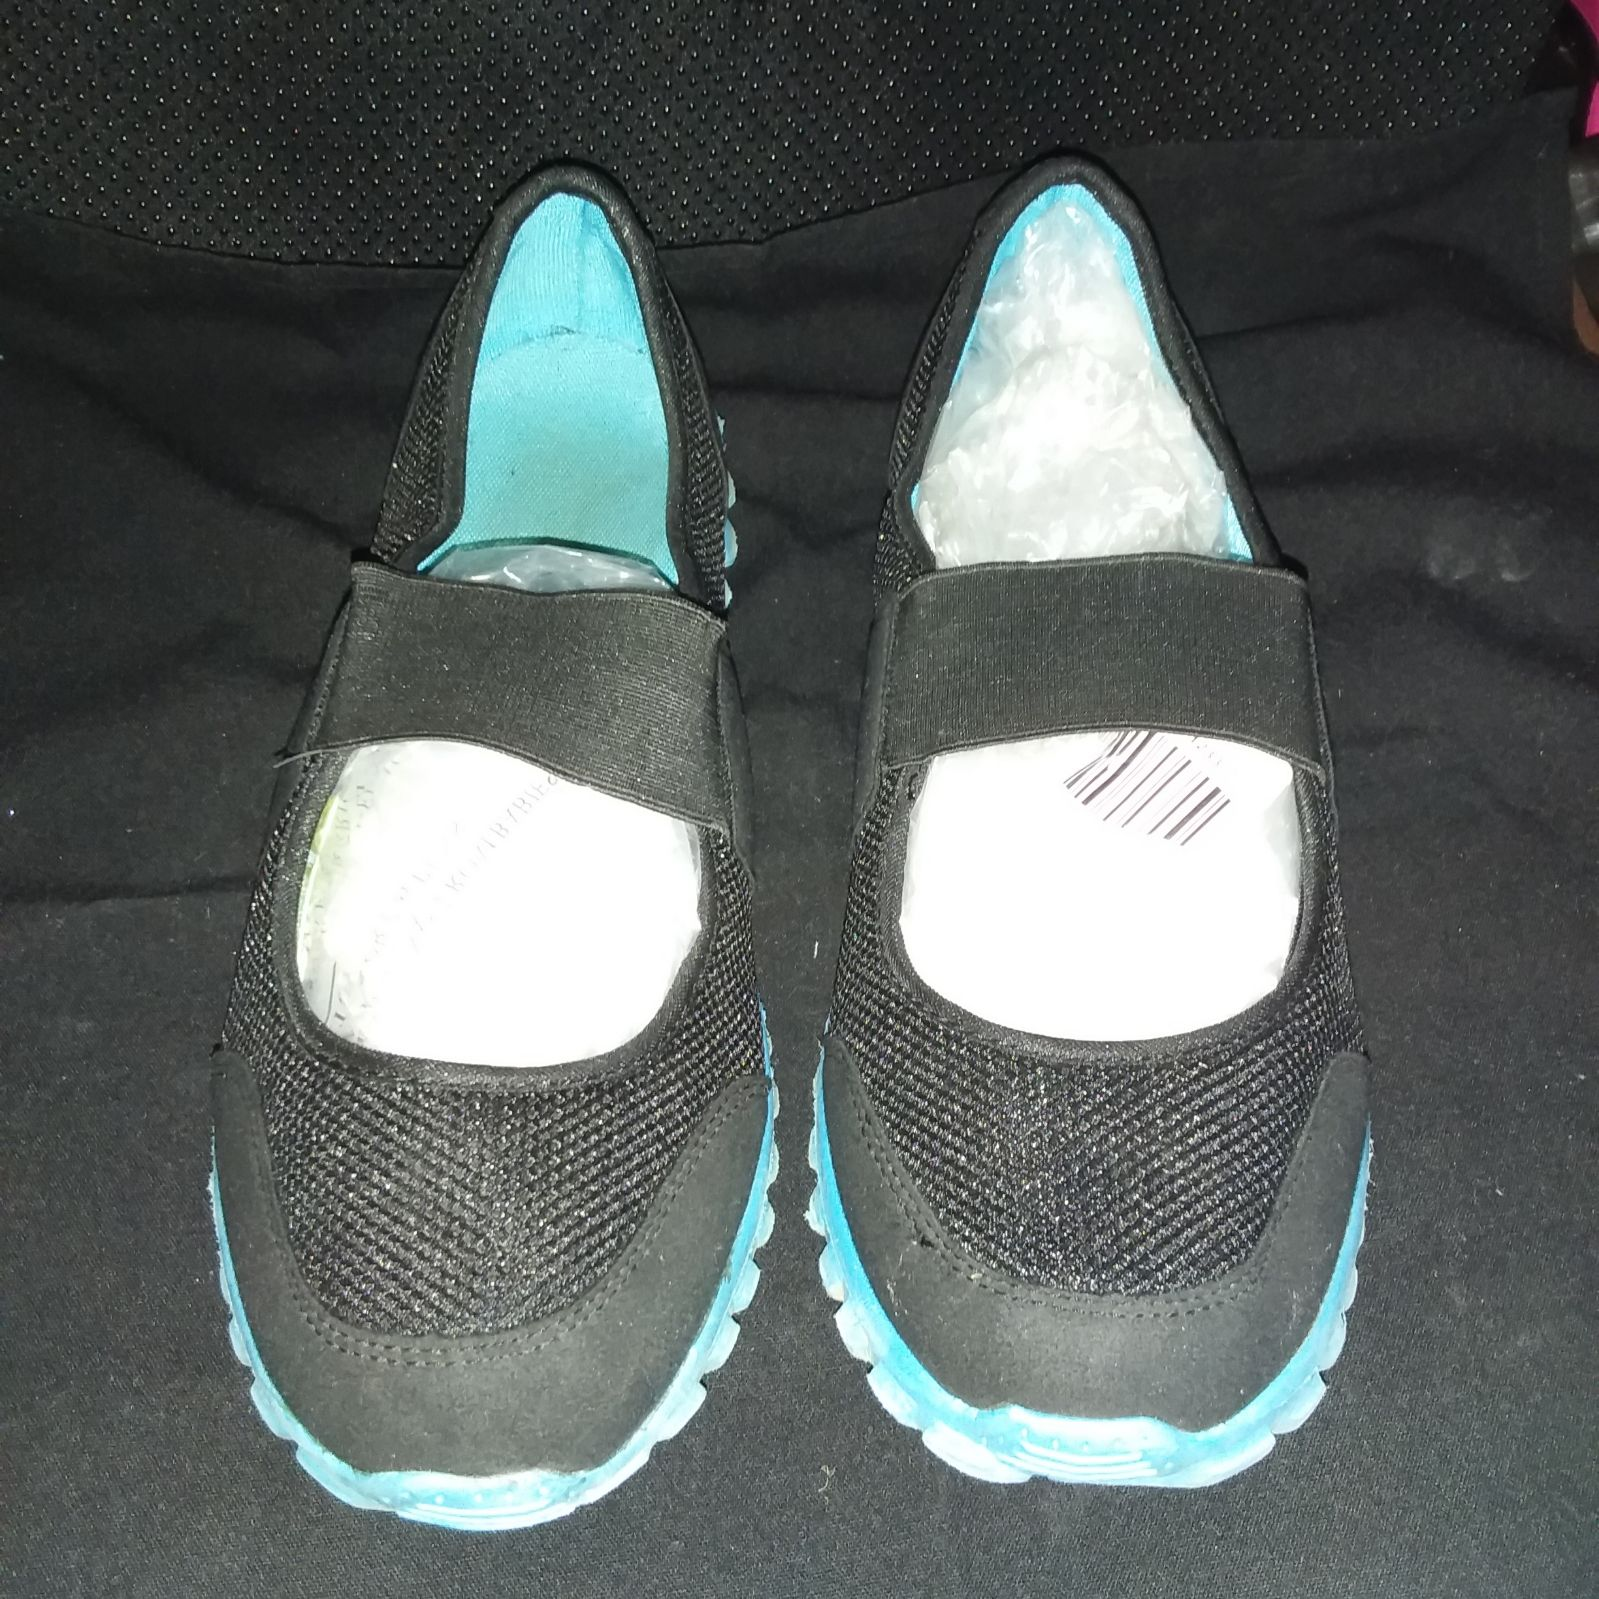 Women's size 12 wide memory foam shoes b